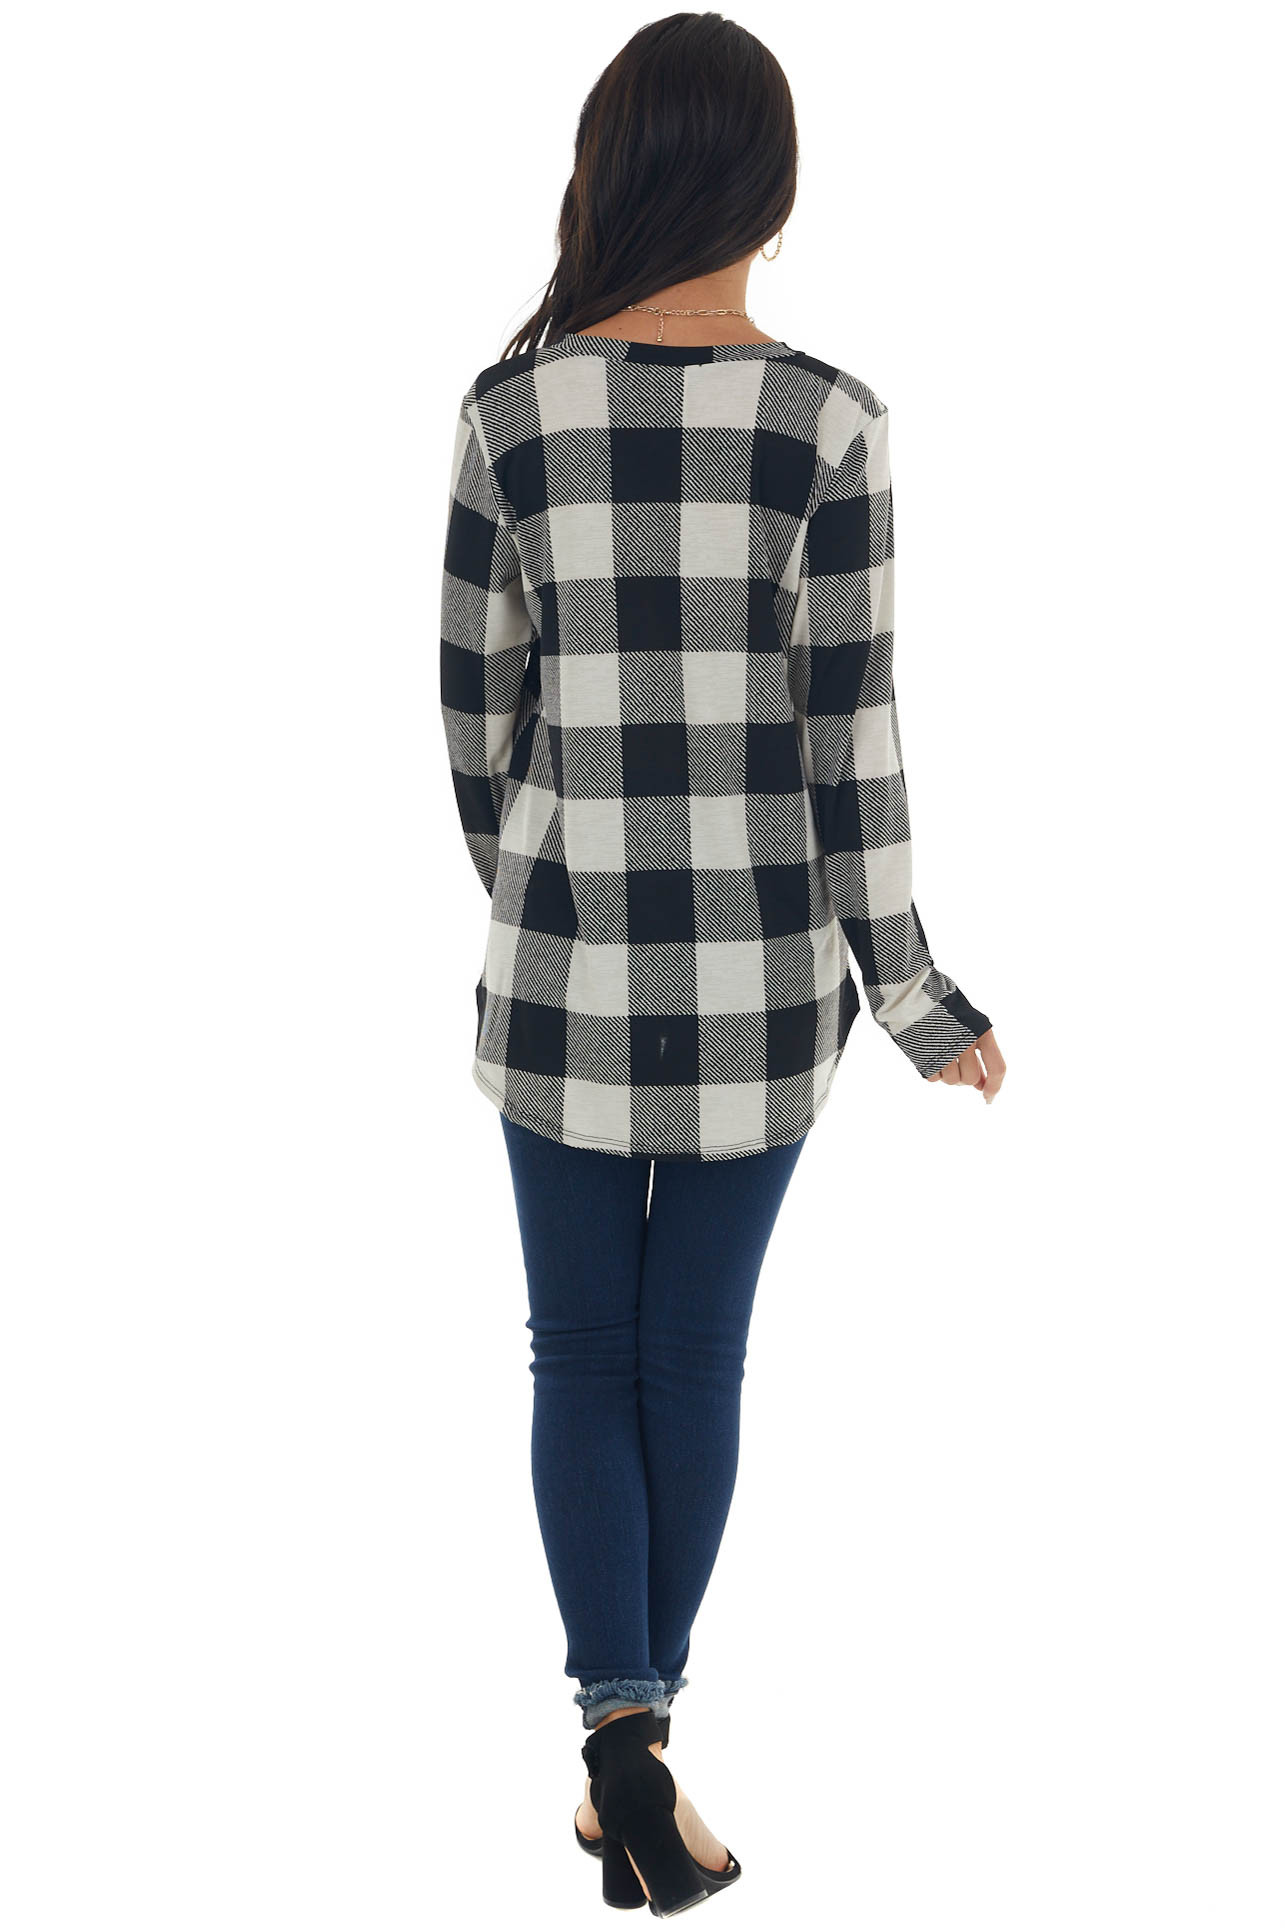 Ivory Buffalo Plaid Long Sleeve Top with Sequins Detail